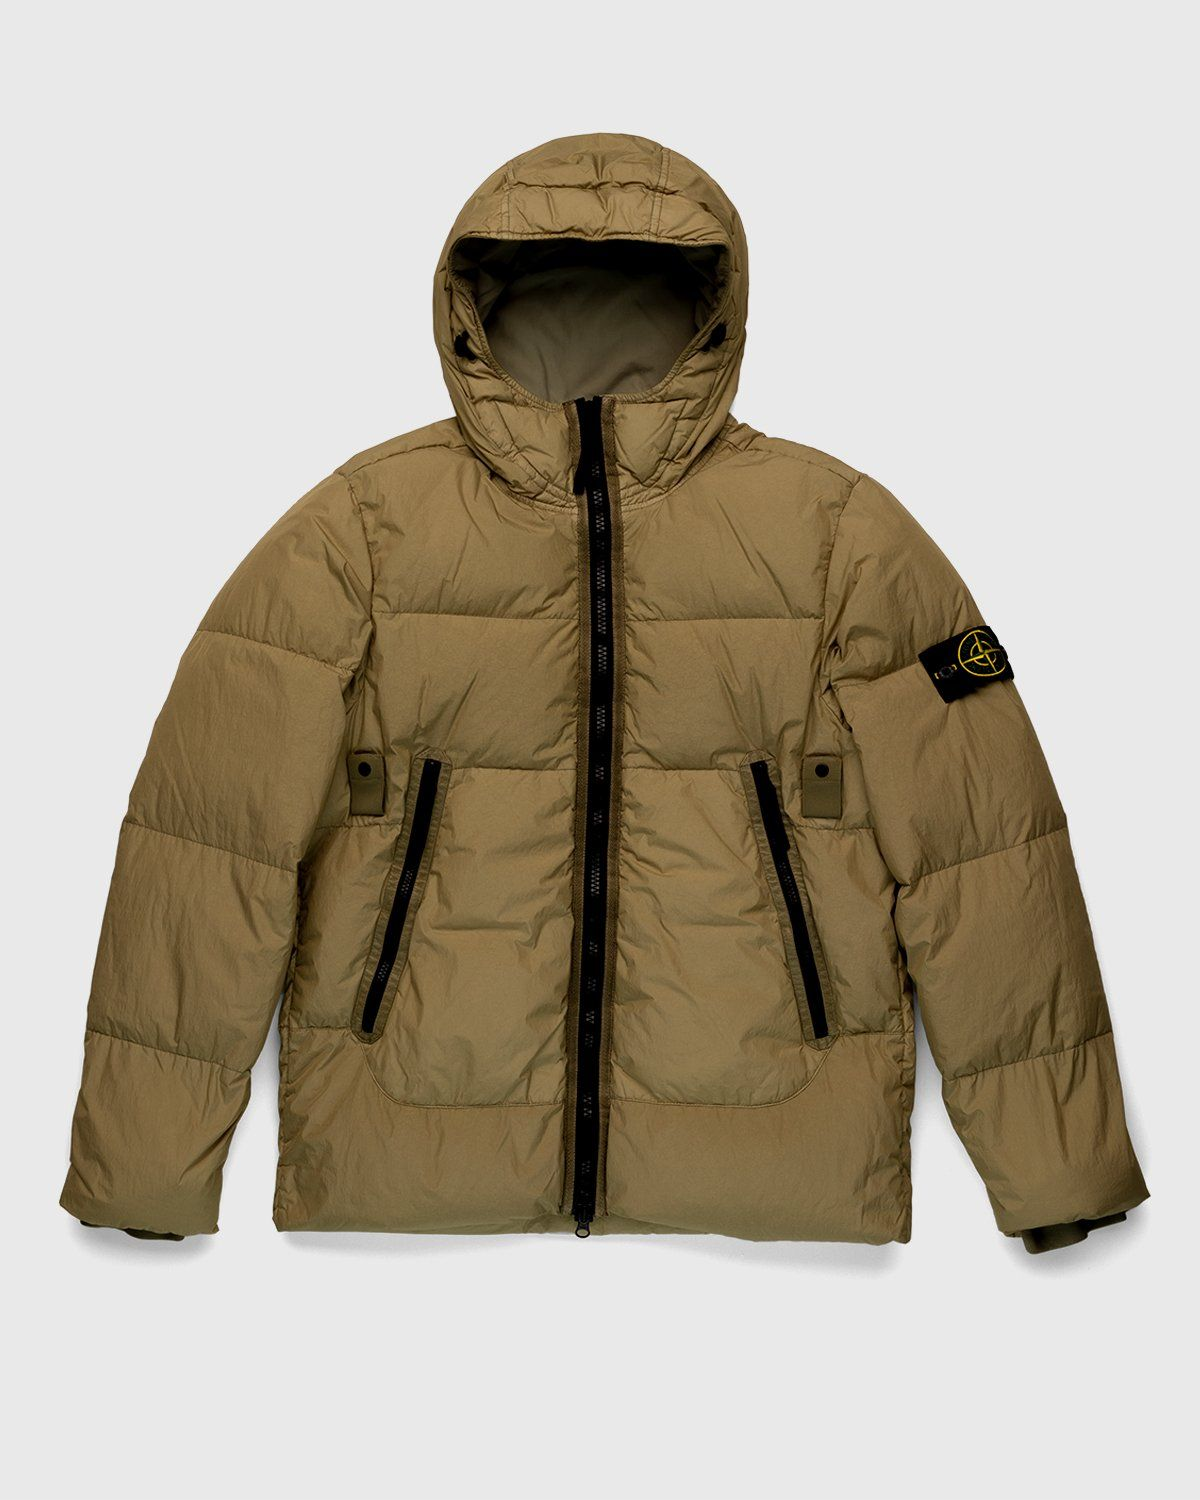 Stone Island – Real Down Jacket Natural Beige - Image 1